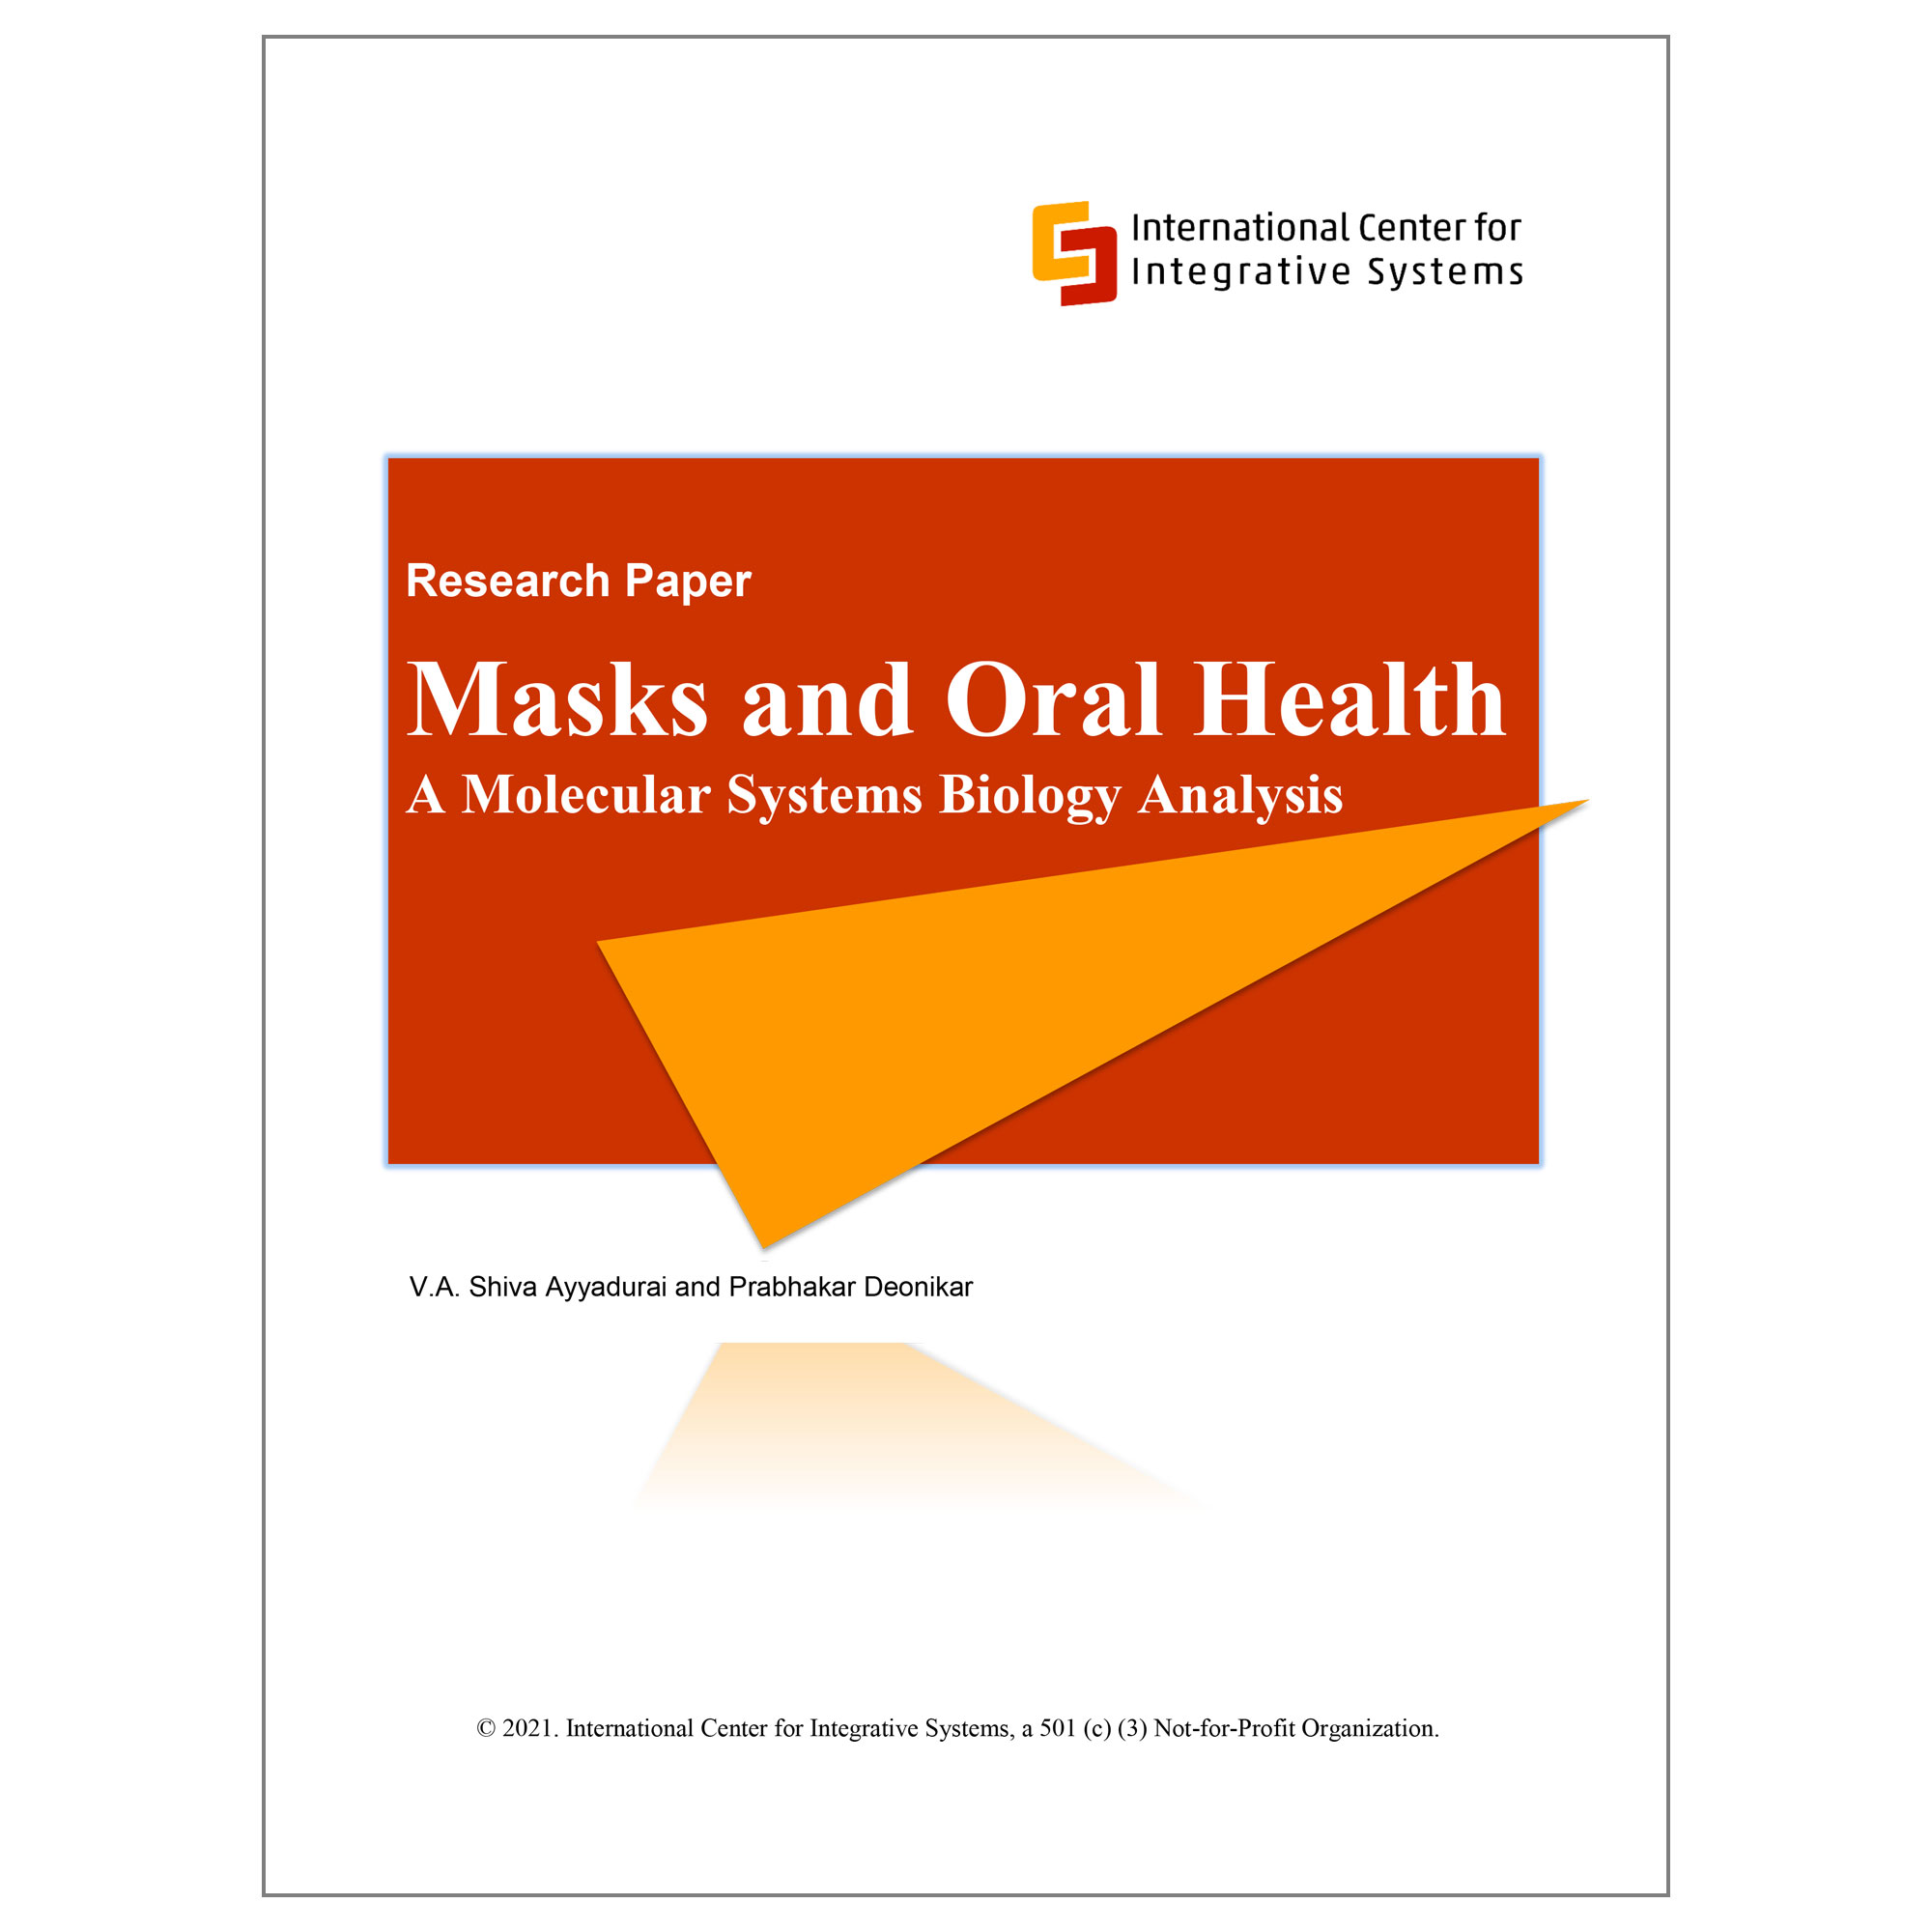 White Paper On Masks And Oral Health